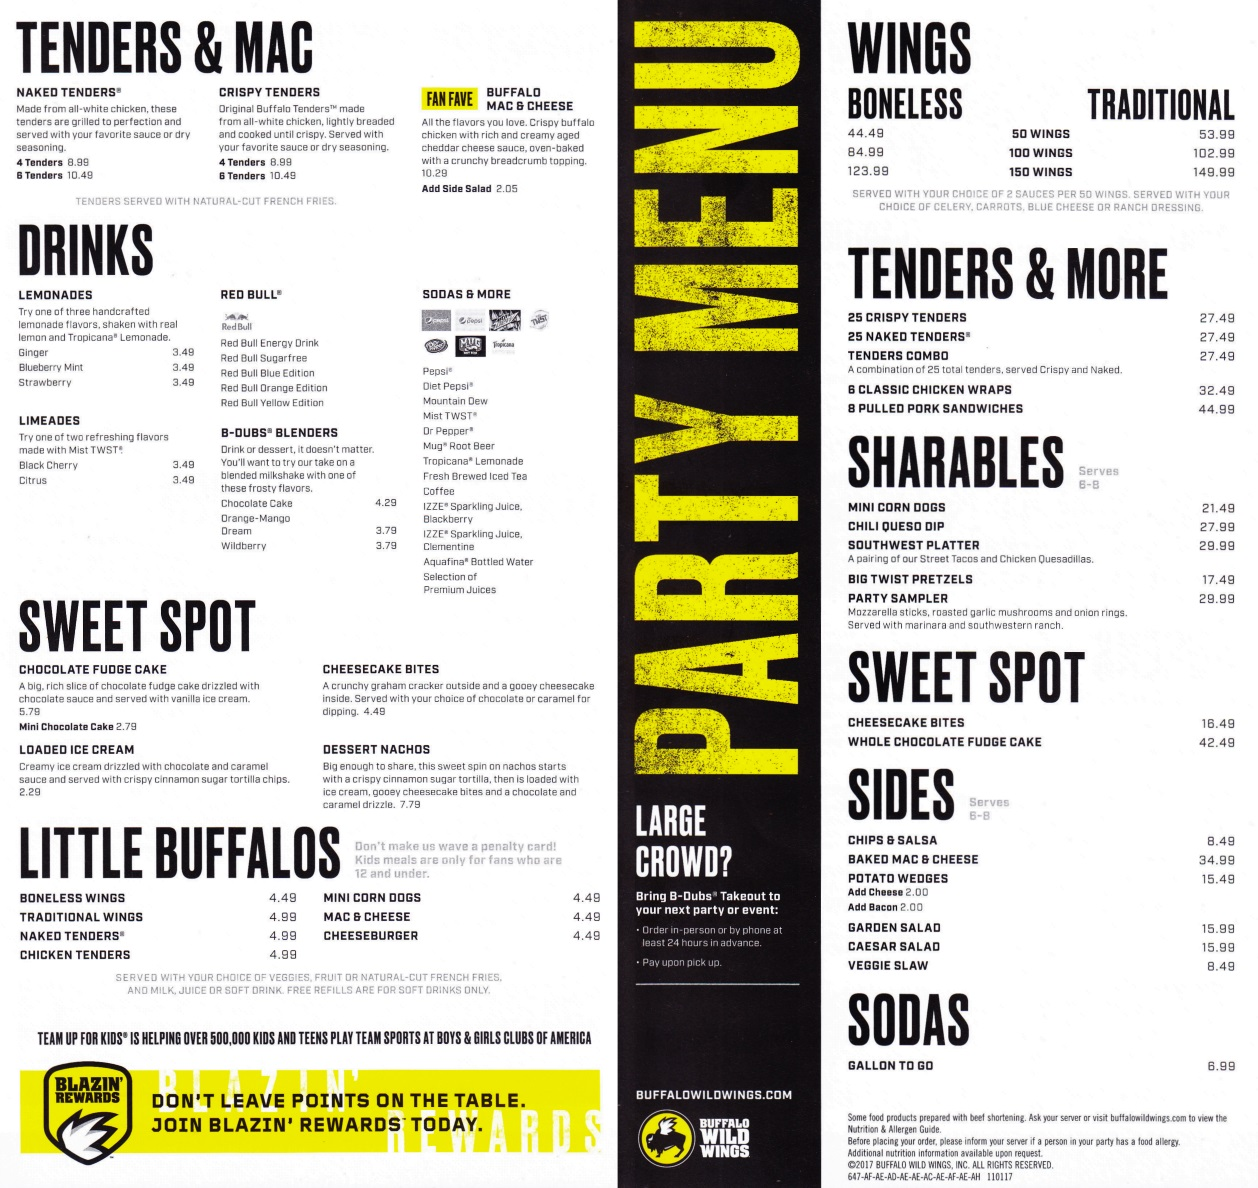 photograph regarding Buffalo Wild Wings Printable Menu called buffalo wild wings get together menu Special Birthday Get together Designs